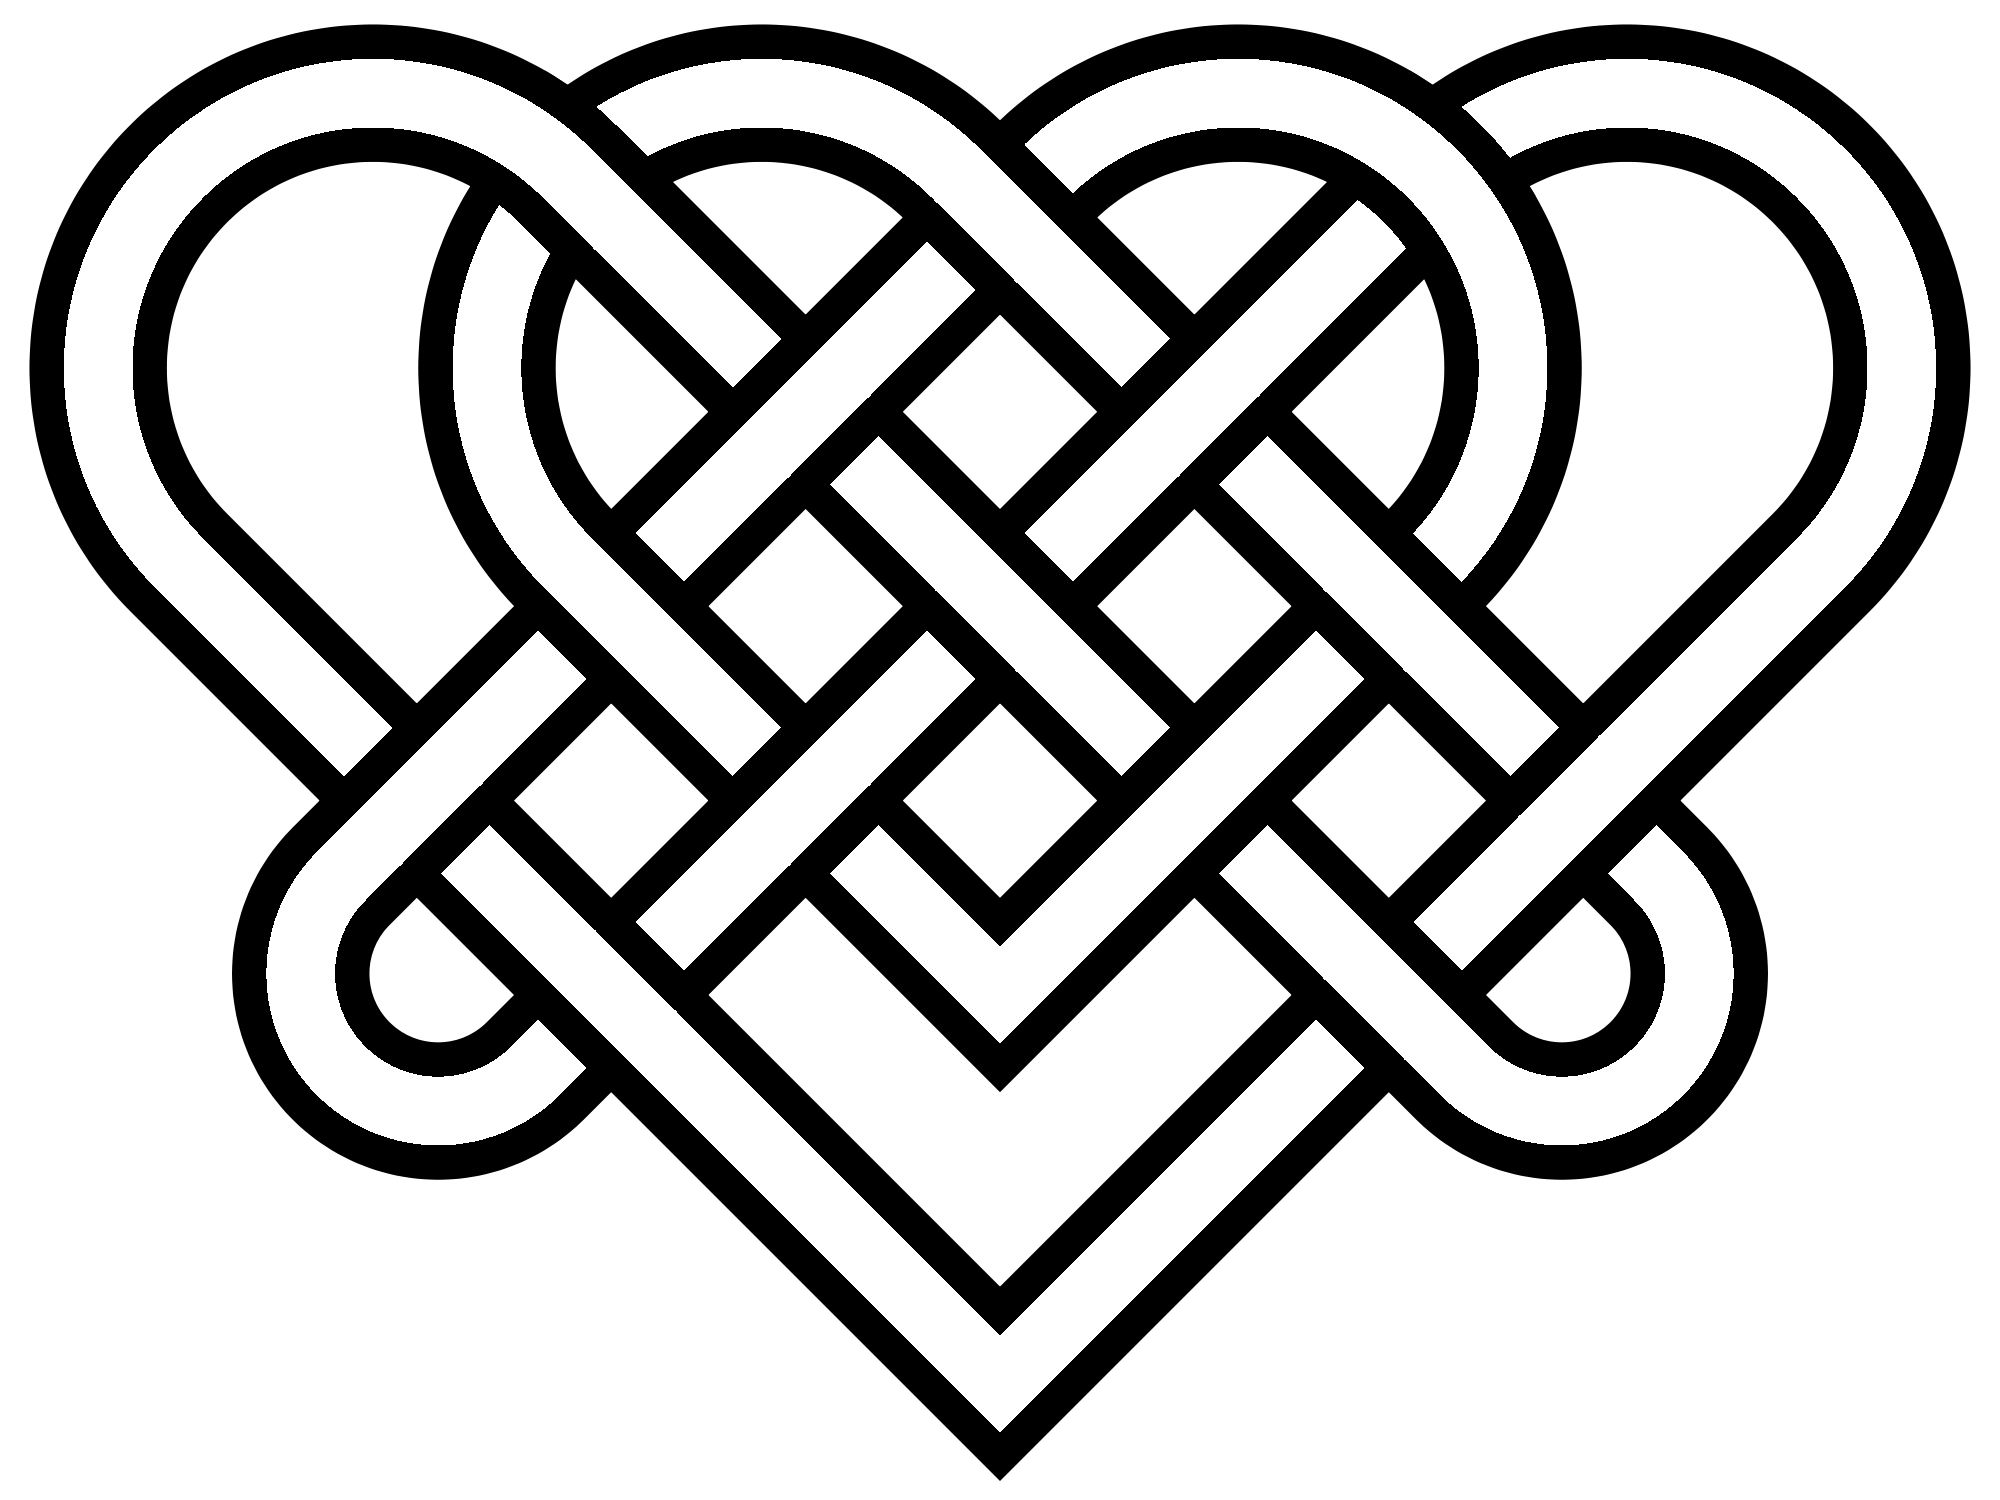 Celtic heart knot clipart vector royalty free download Heart Celtic Knot transparent PNG - StickPNG vector royalty free download